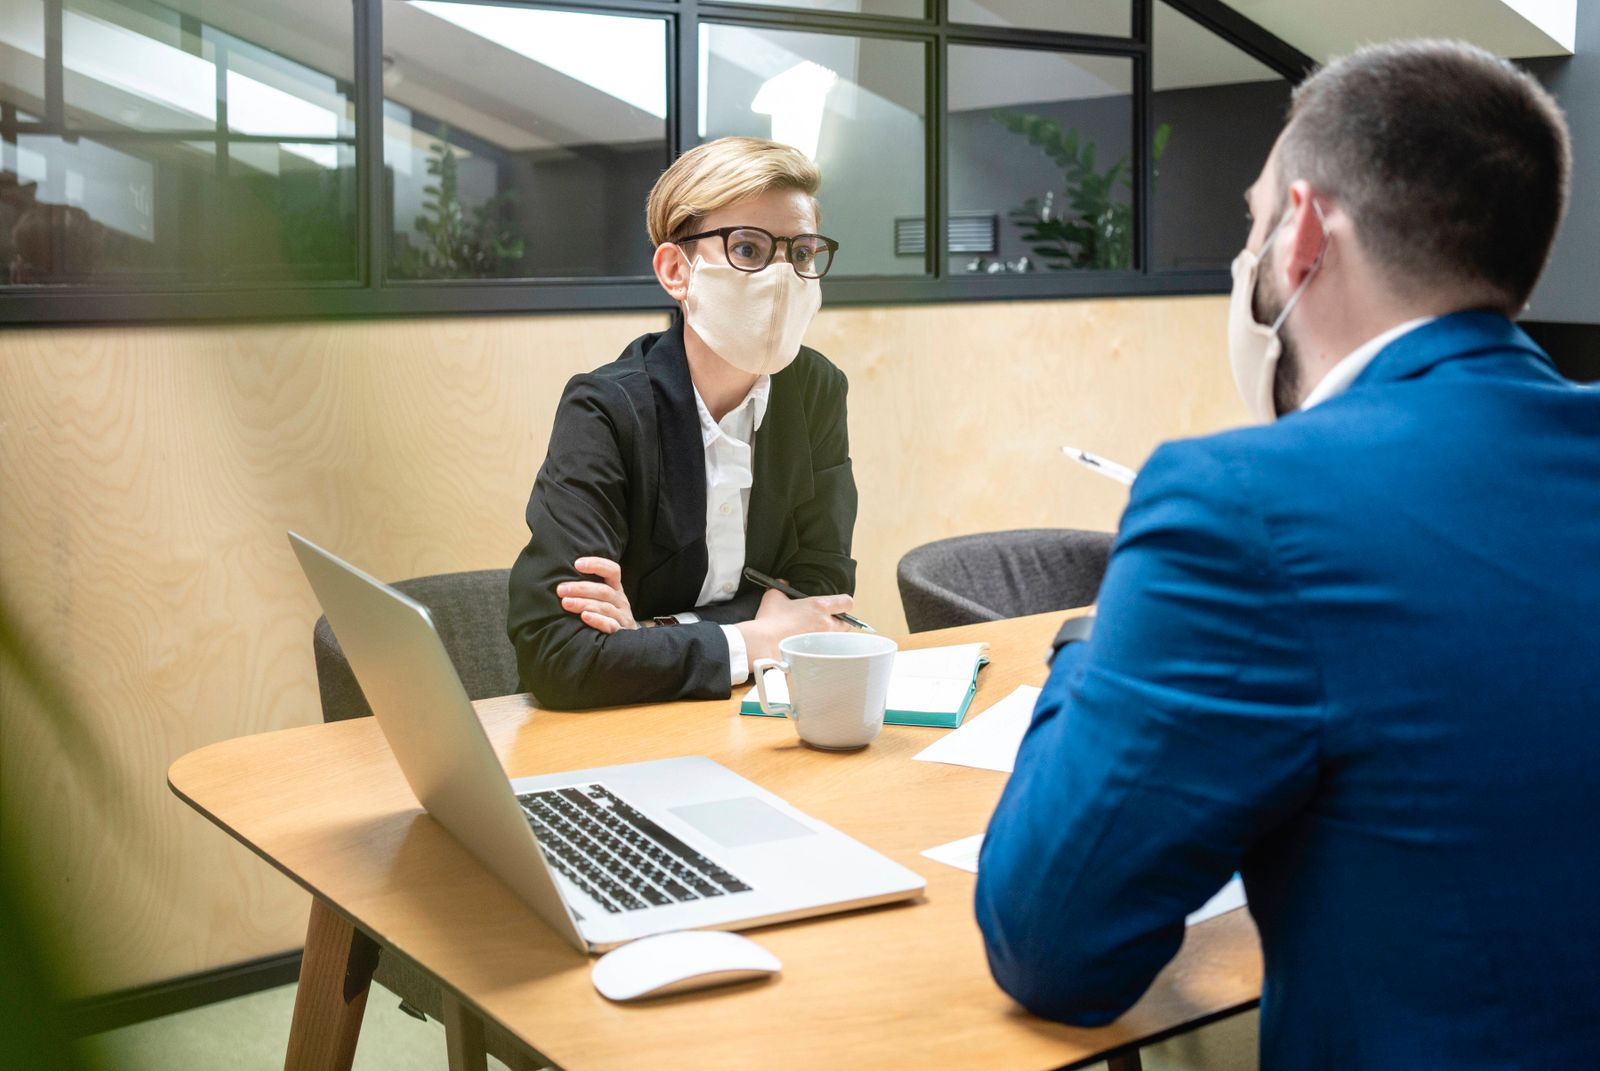 Female and male colleagues wearing masks while planning strategy at desk in board room during epidemic model released Sy